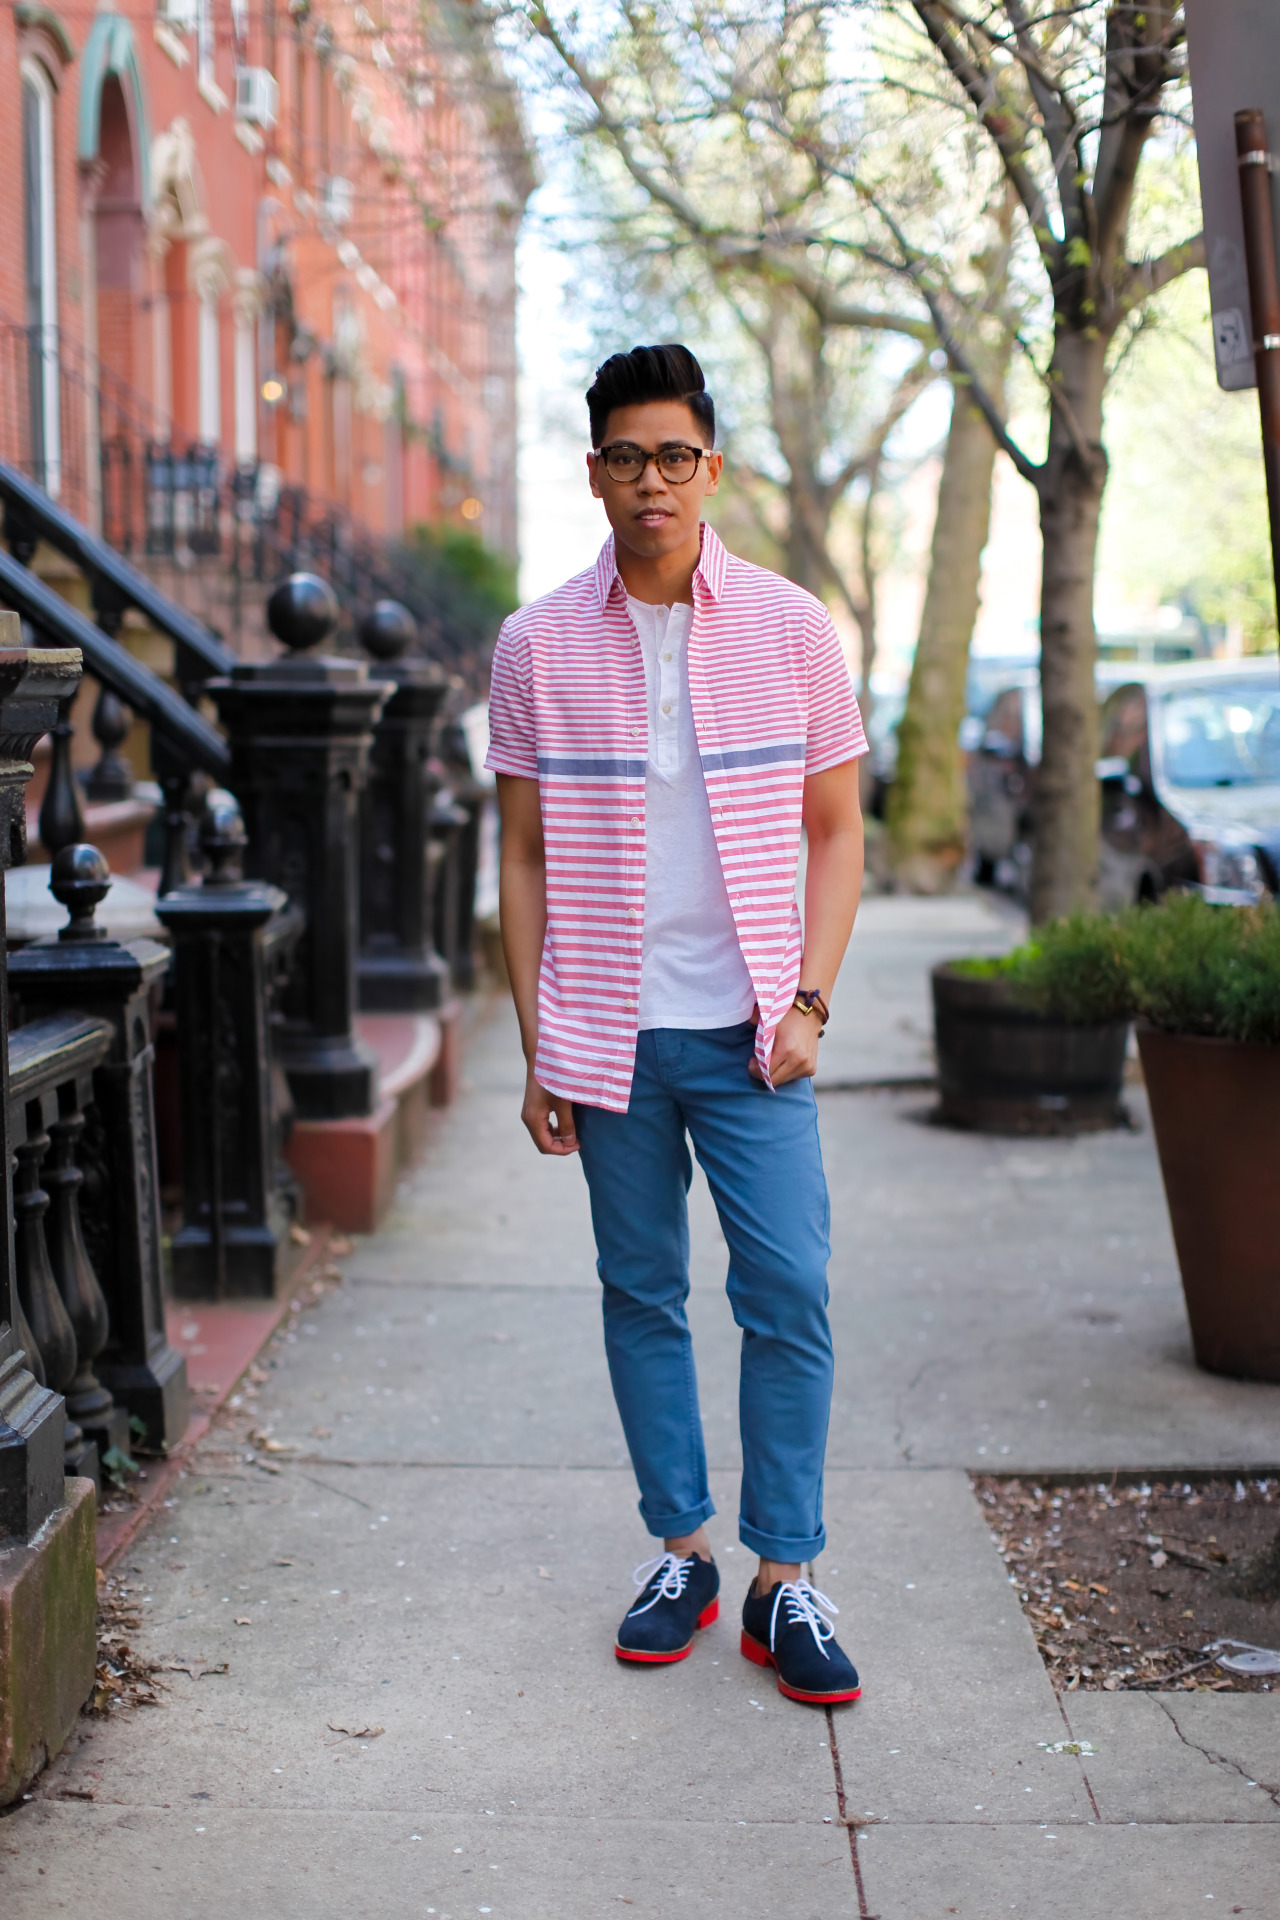 Men's Nautical-Inspired Spring/Summer Fashion Sail Away - See the full post HERE FACEBOOK | TWITTER | BLOGLOVIN | PINTEREST | LOOKBOOK